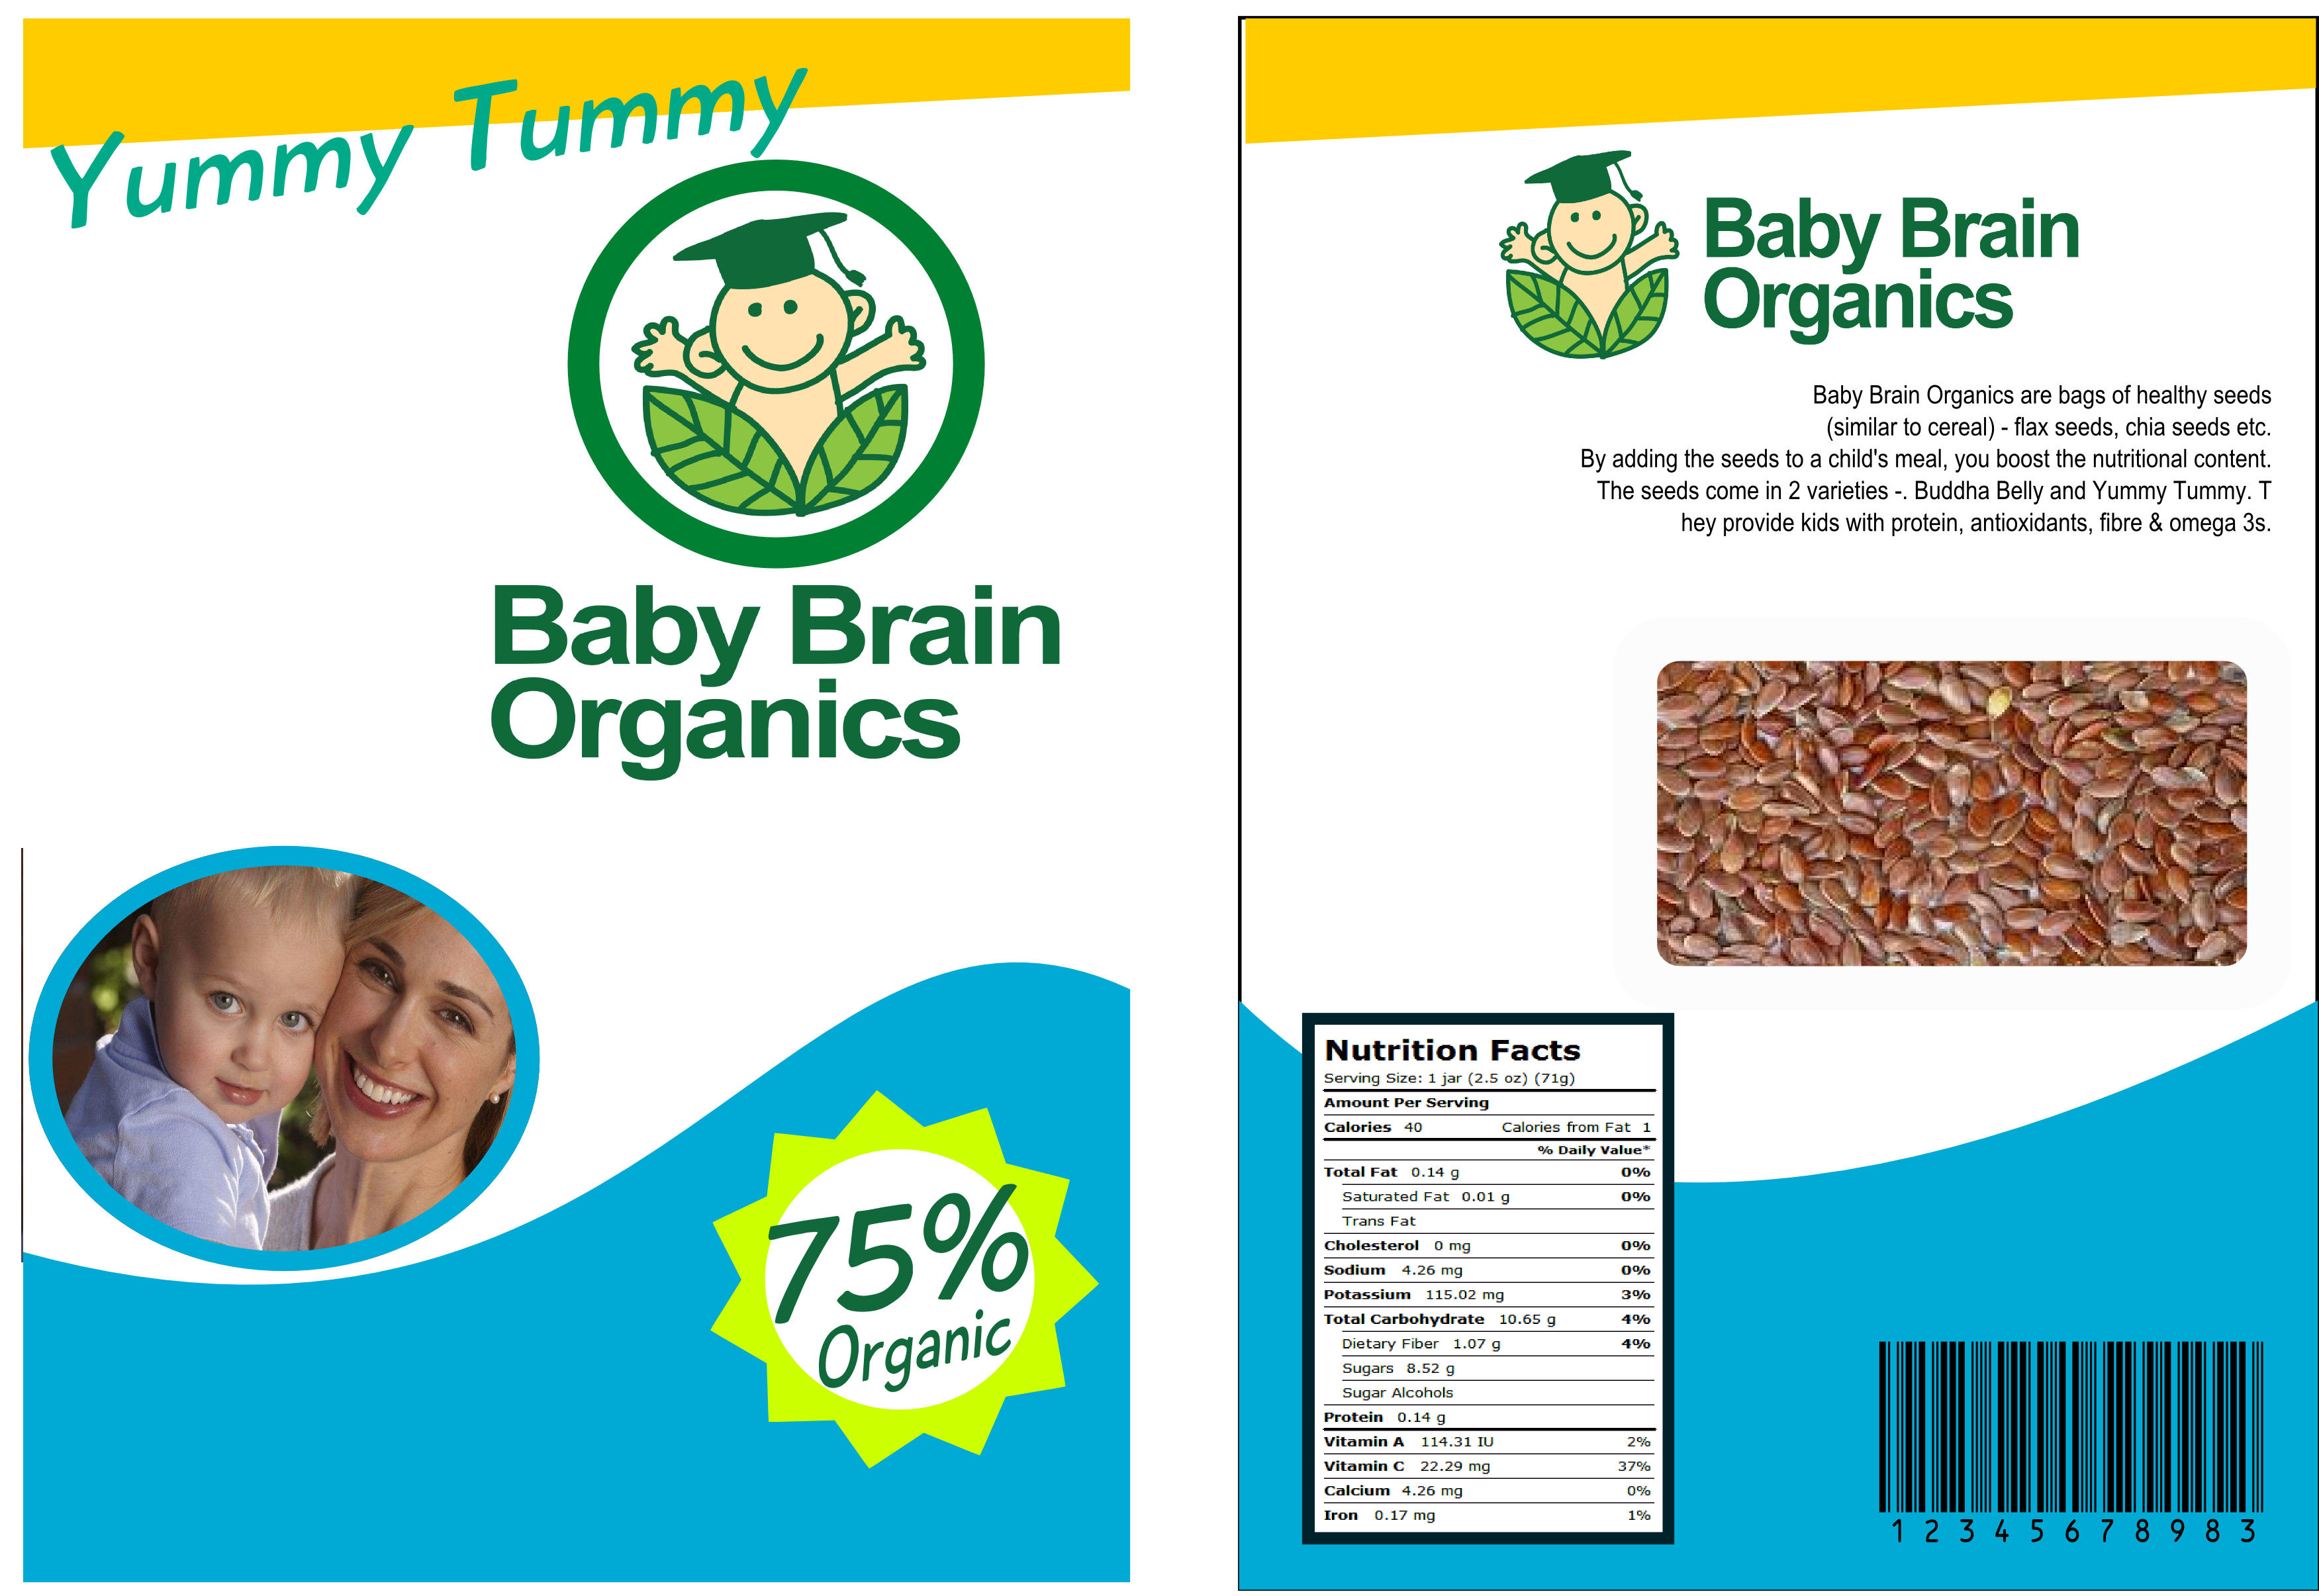 Packaging Design by whoosef - Entry No. 53 in the Packaging Design Contest Baby Brain Organics Packaging Design.